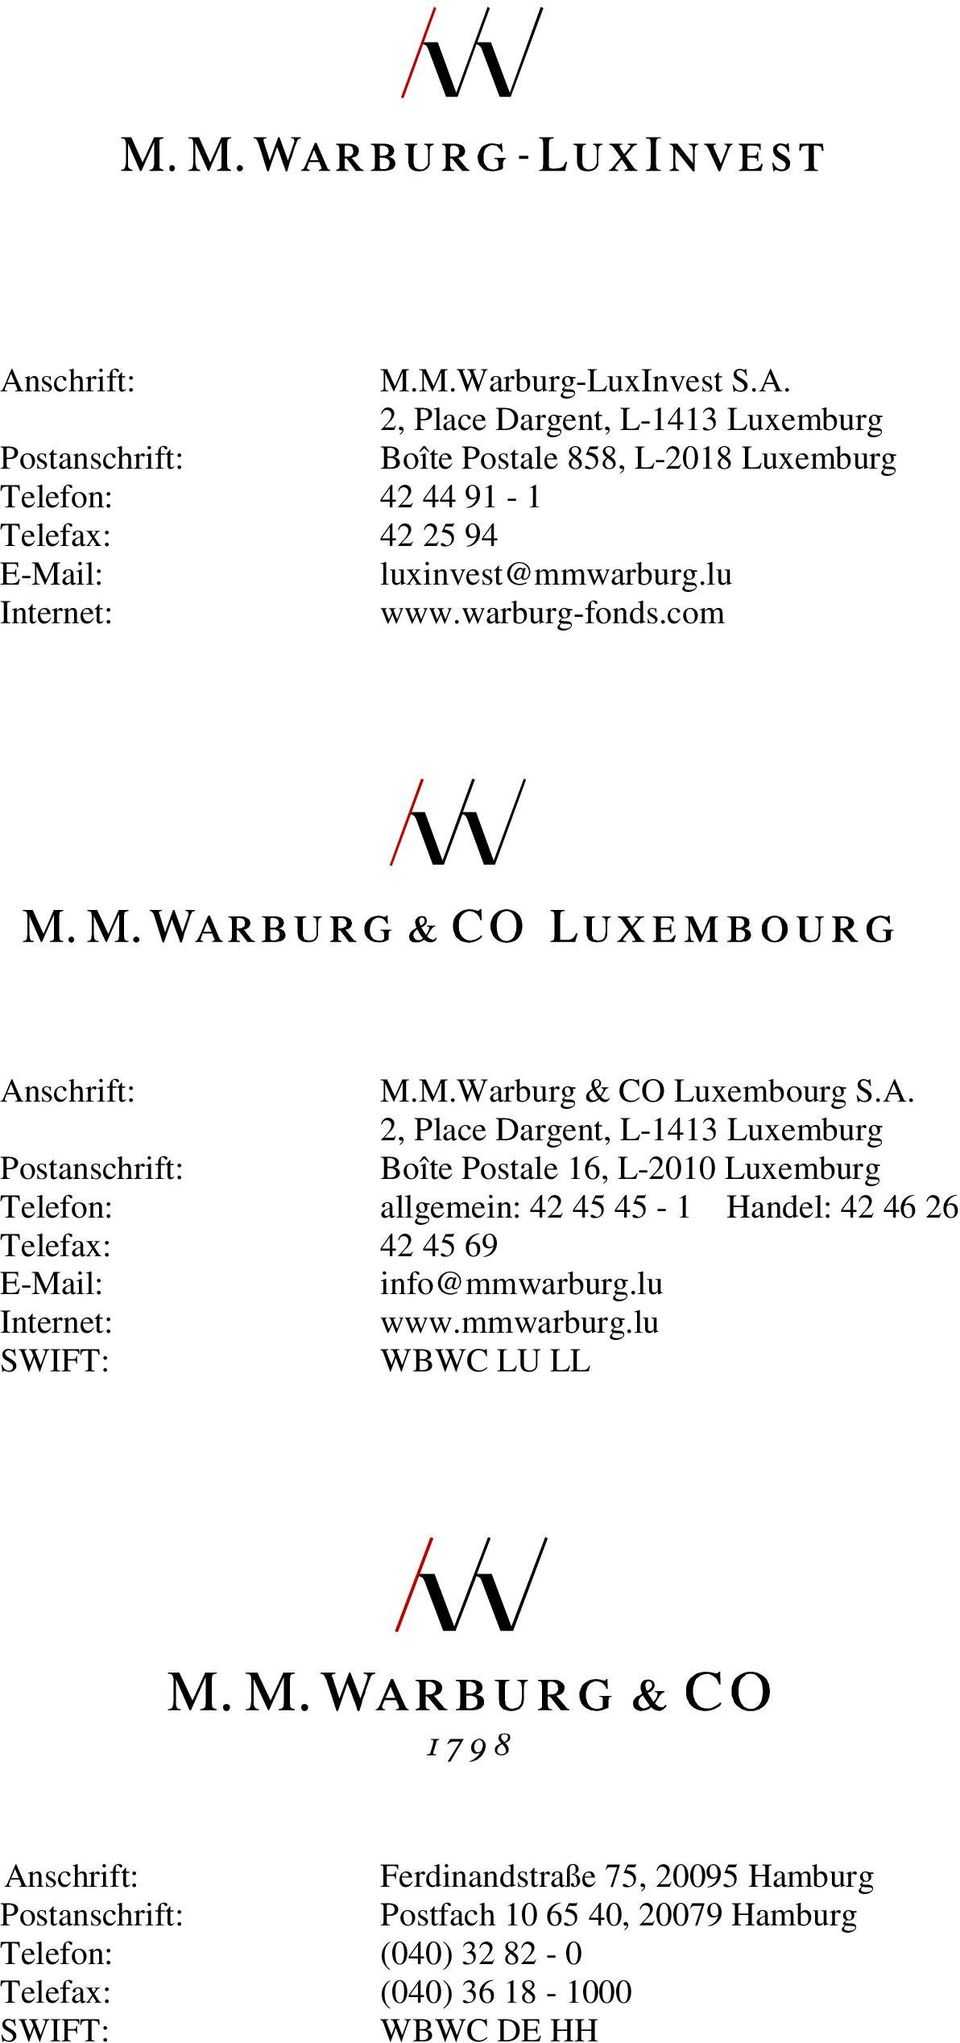 schrift: M.M.Warburg & CO Luxembourg S.A.